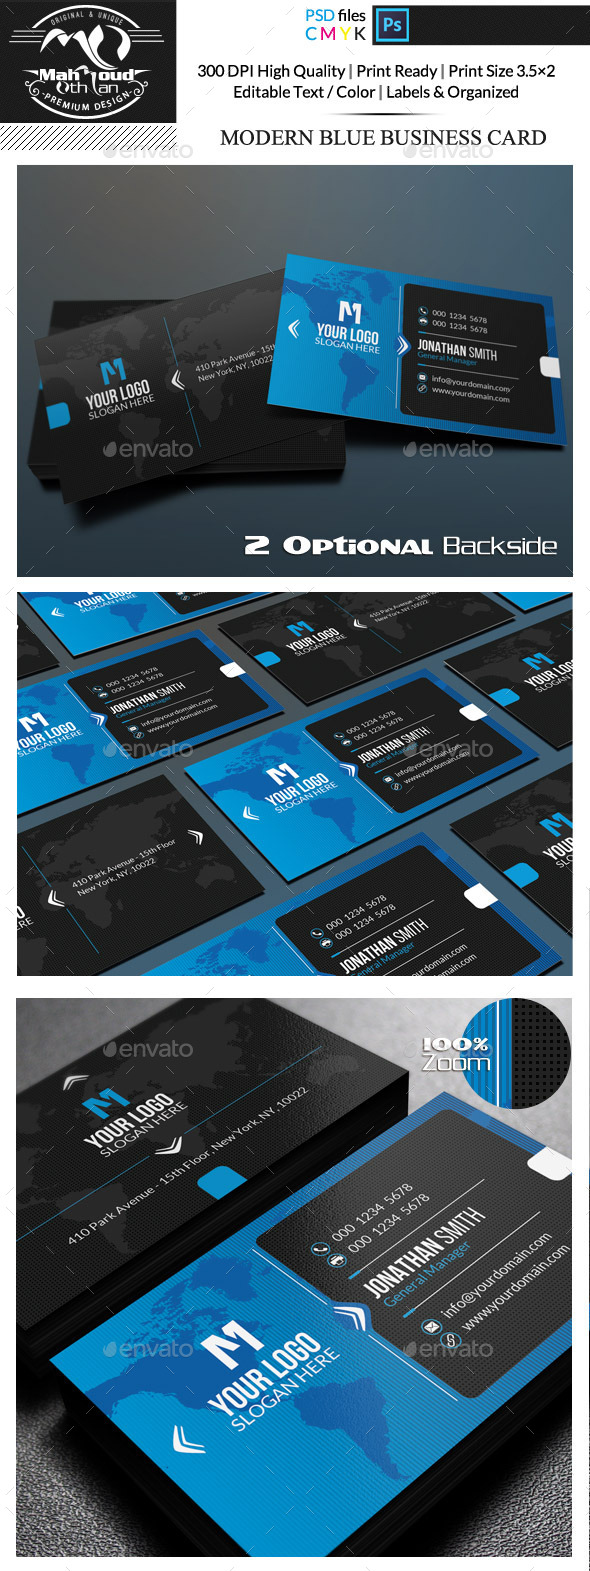 Modern Blue Business Card - Corporate Business Cards